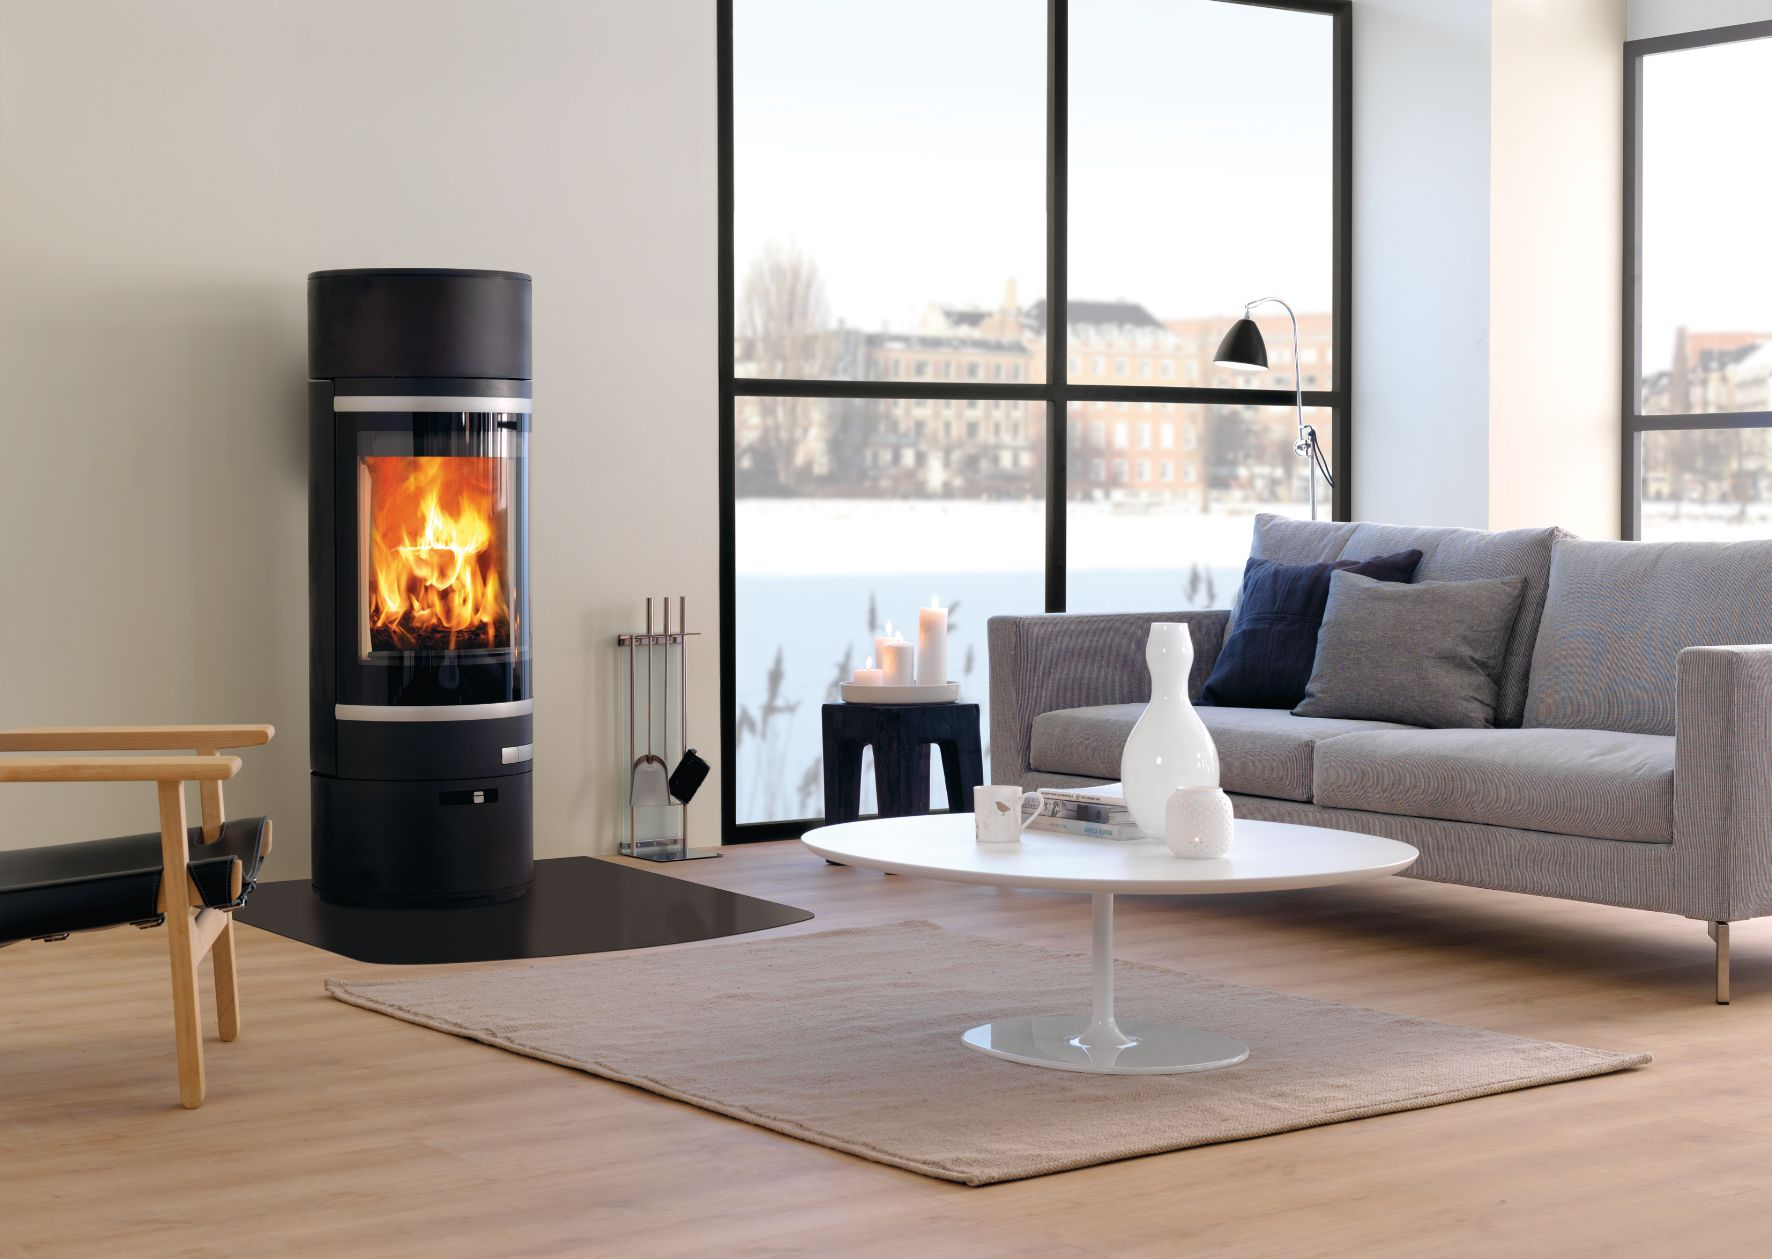 Poªle  bois Scan 85 pour larges b ches Scan stove for large logs